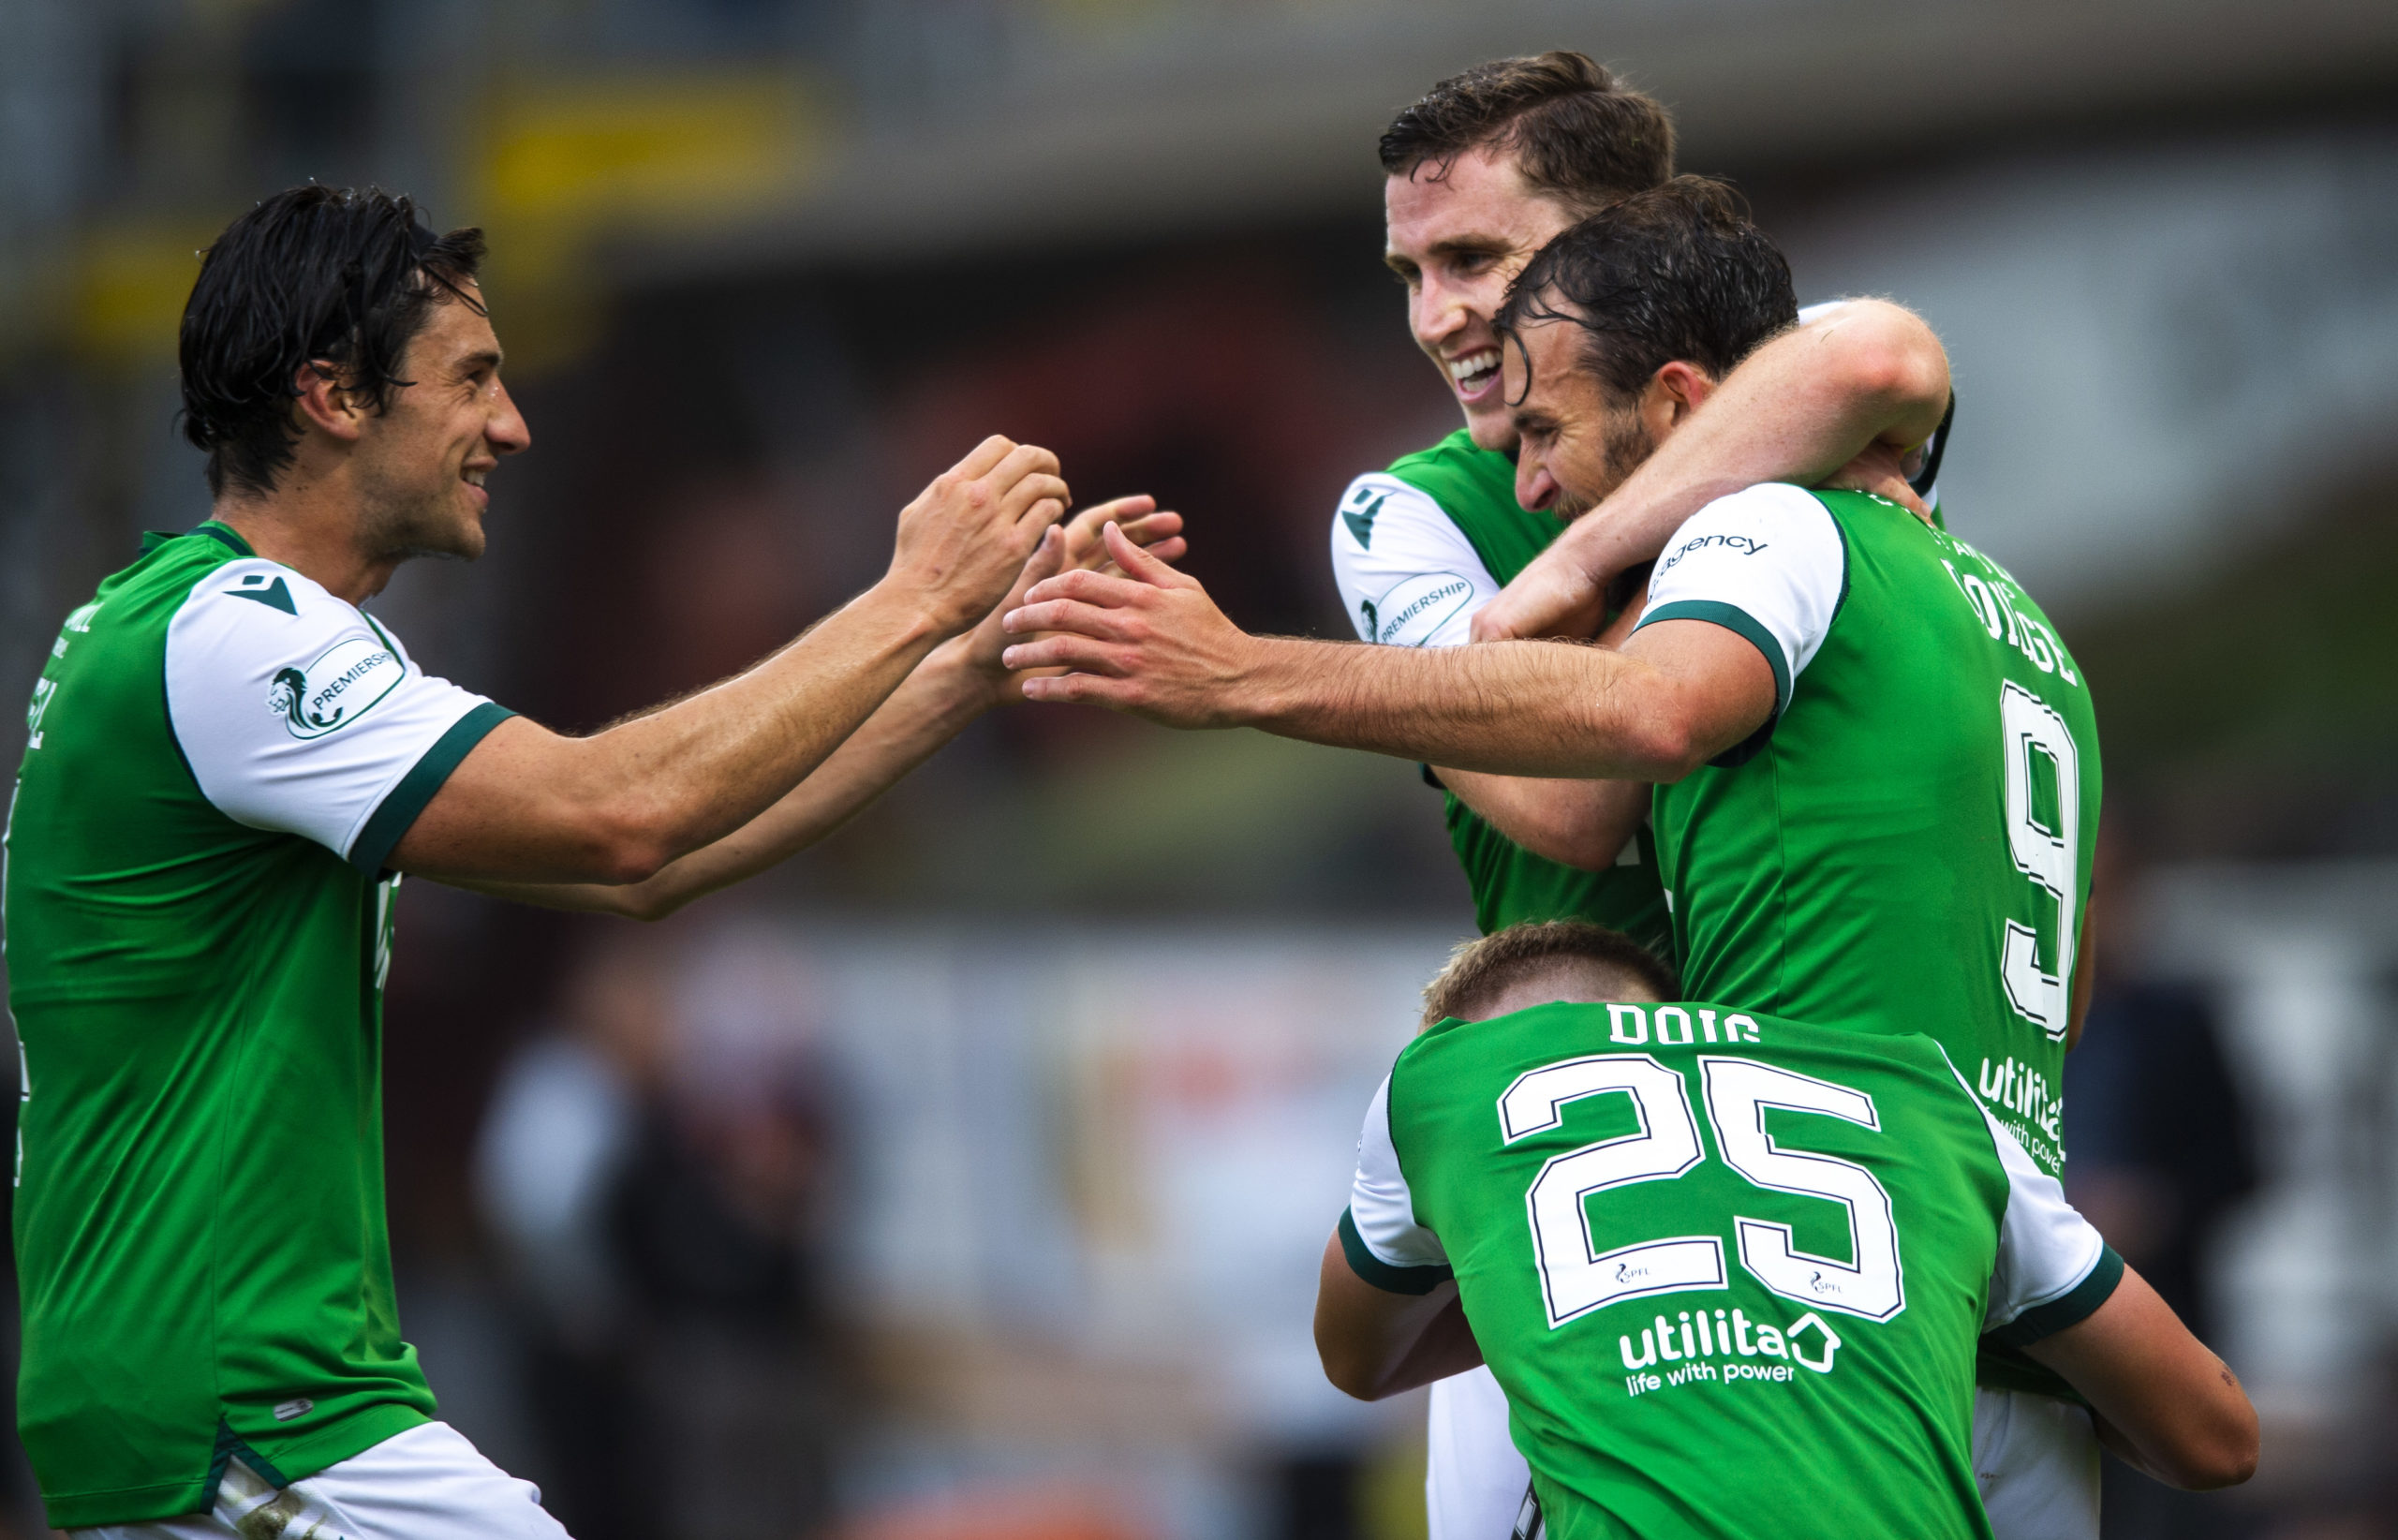 Christian Doidge (No 9) is mobbed after netting the winner for the Hibees.